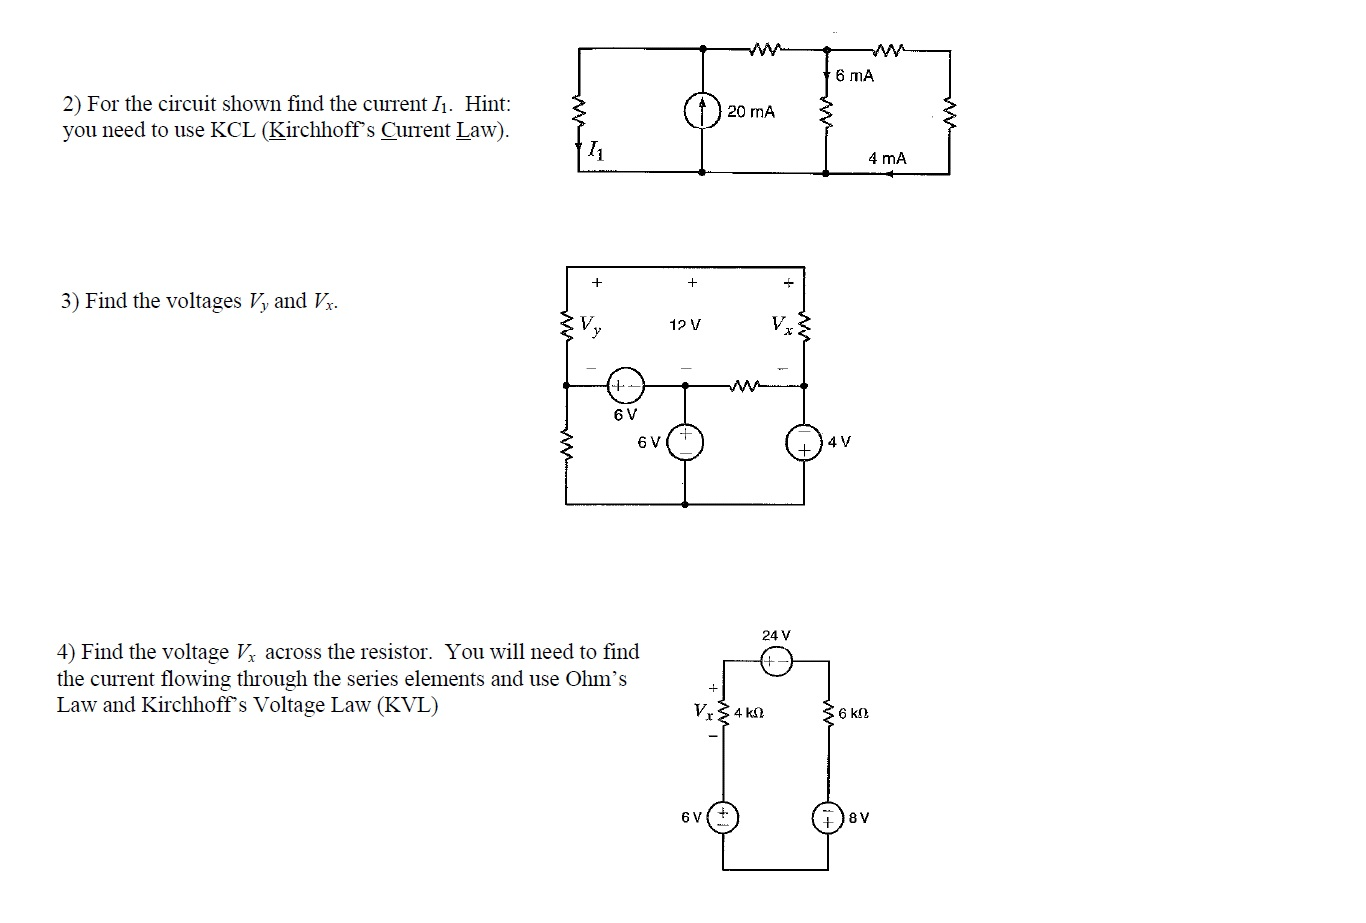 For the circuit shown find the current I1. Hint: y